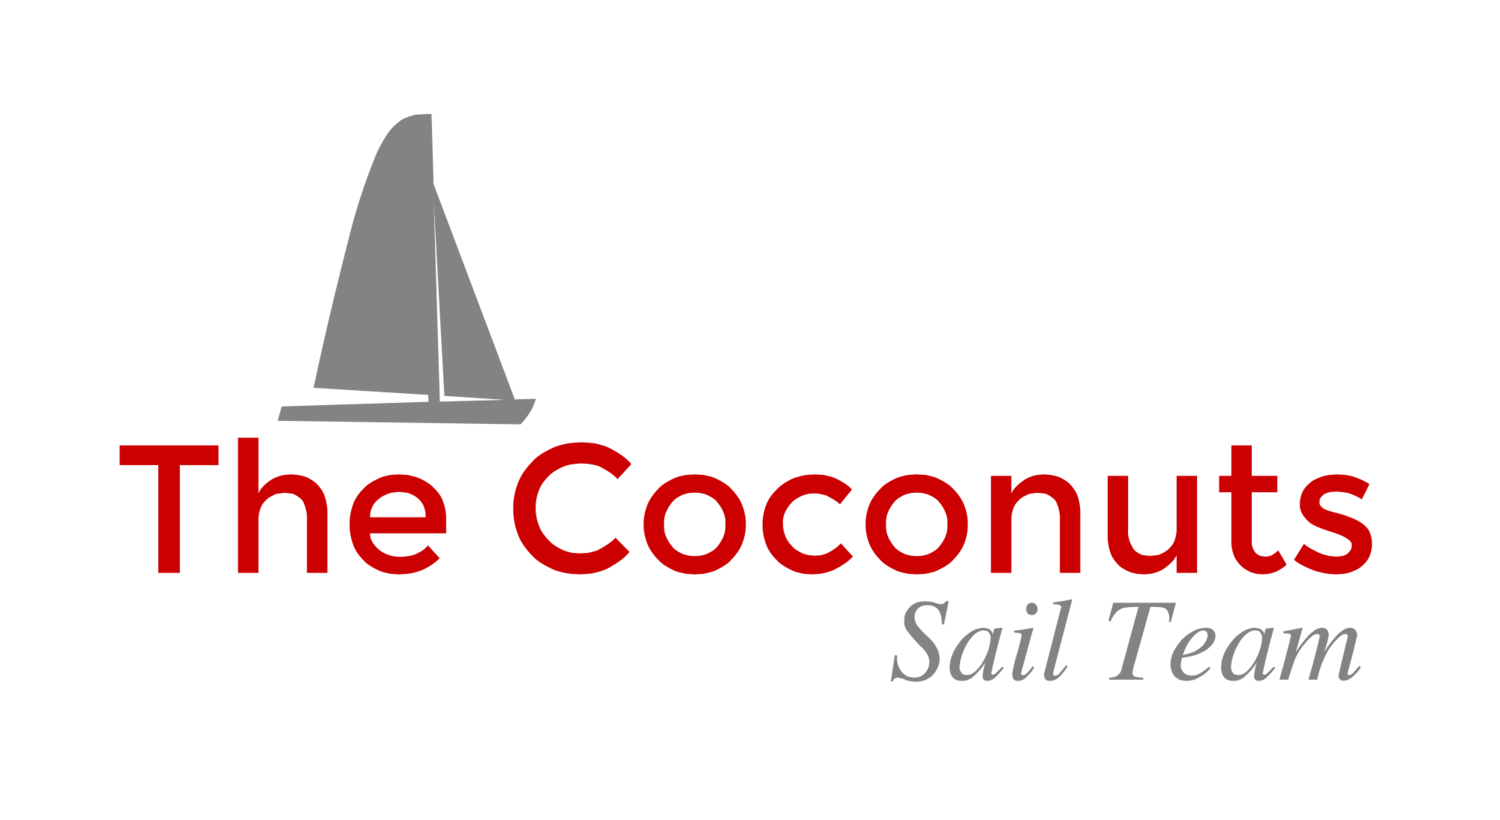 The Coconuts Sail Team